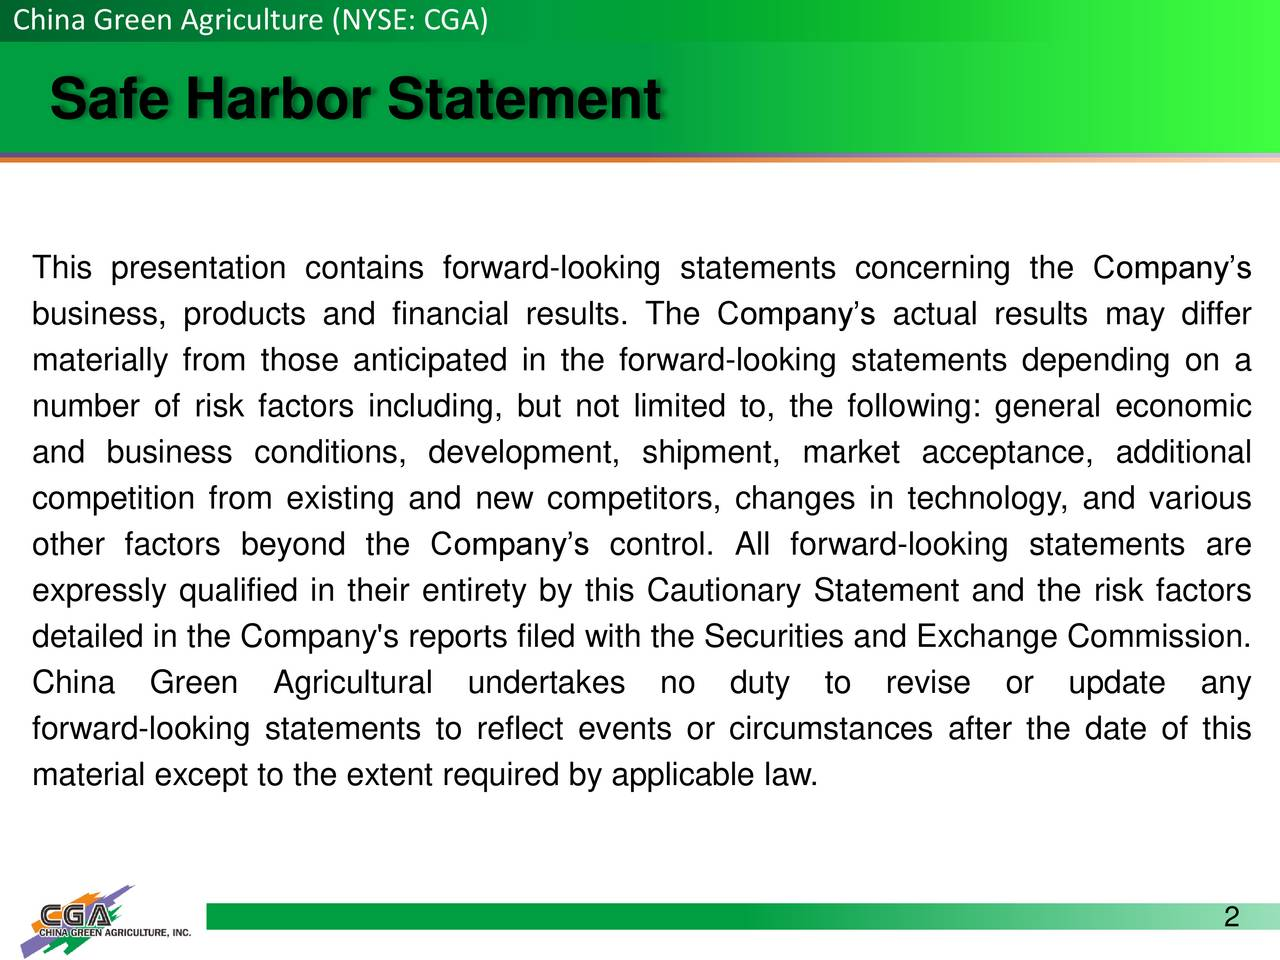 Safe Harbor Statement This presentation contains forward-looking statements concerning the Companys business, products and financial results. The Companys actual results may differ materially from those anticipated in the forward-looking statements depending on a number of risk factors including, but not limited to, the following: general economic and business conditions, development, shipment, market acceptance, additional competition from existing and new competitors, changes in technology, and various other factors beyond the Companys control. All forward-looking statements are expressly qualified in their entirety by this Cautionary Statement and the risk factors detailed in the Company's reports filed with the Securities and Exchange Commission. China Green Agricultural undertakes no duty to revise or update any forward-looking statements to reflect events or circumstances after the date of this material except to the extent required by applicable law. 2